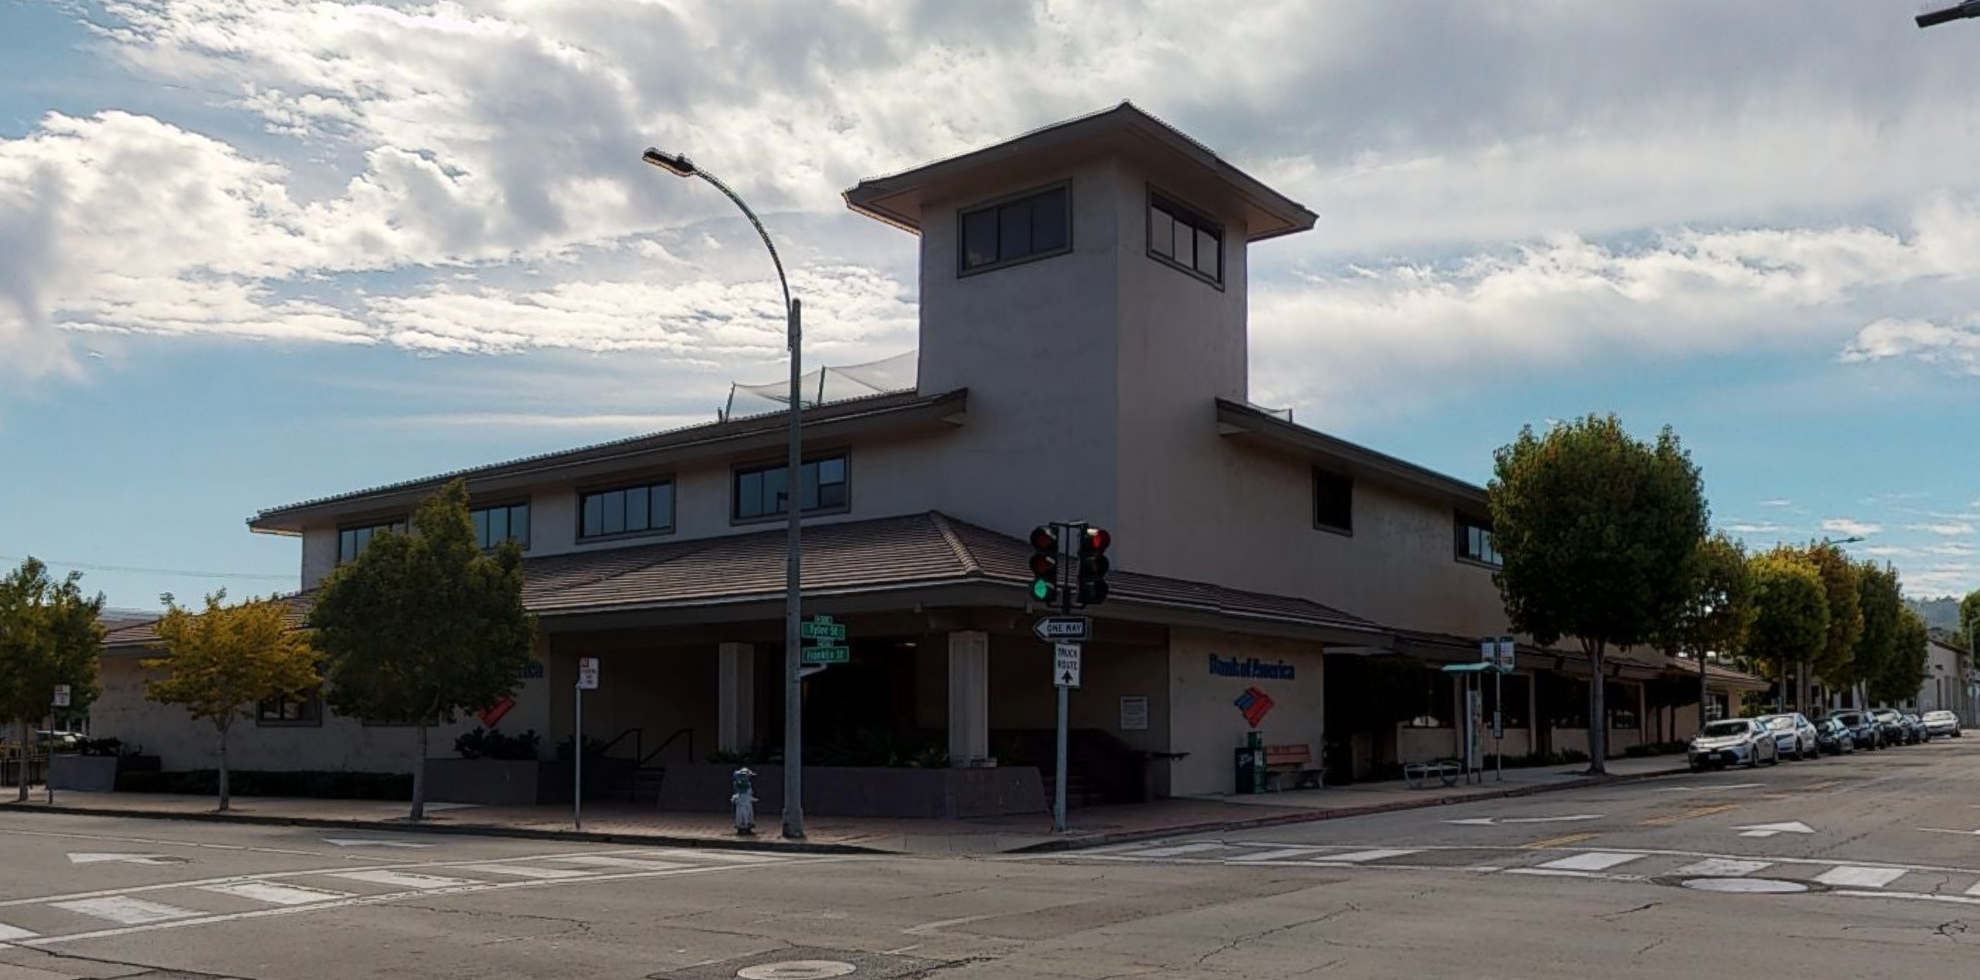 Bank of America financial center with walk-up ATM | 200 E Franklin St, Monterey, CA 93940